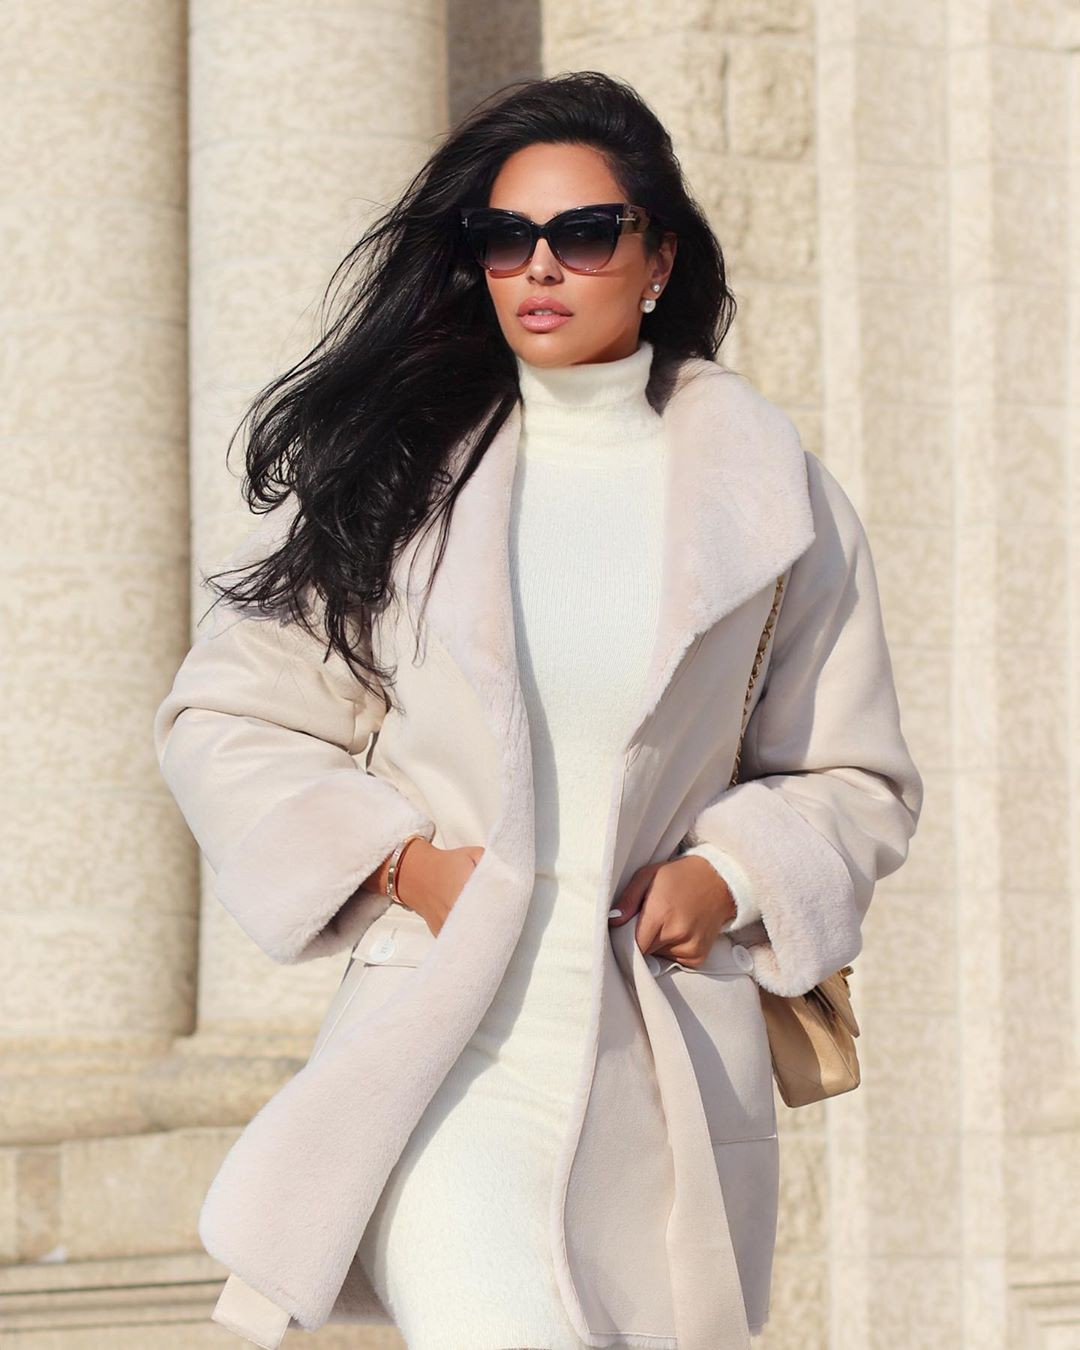 white outfit instagram with blazer, coat, sunglasses, eyewear